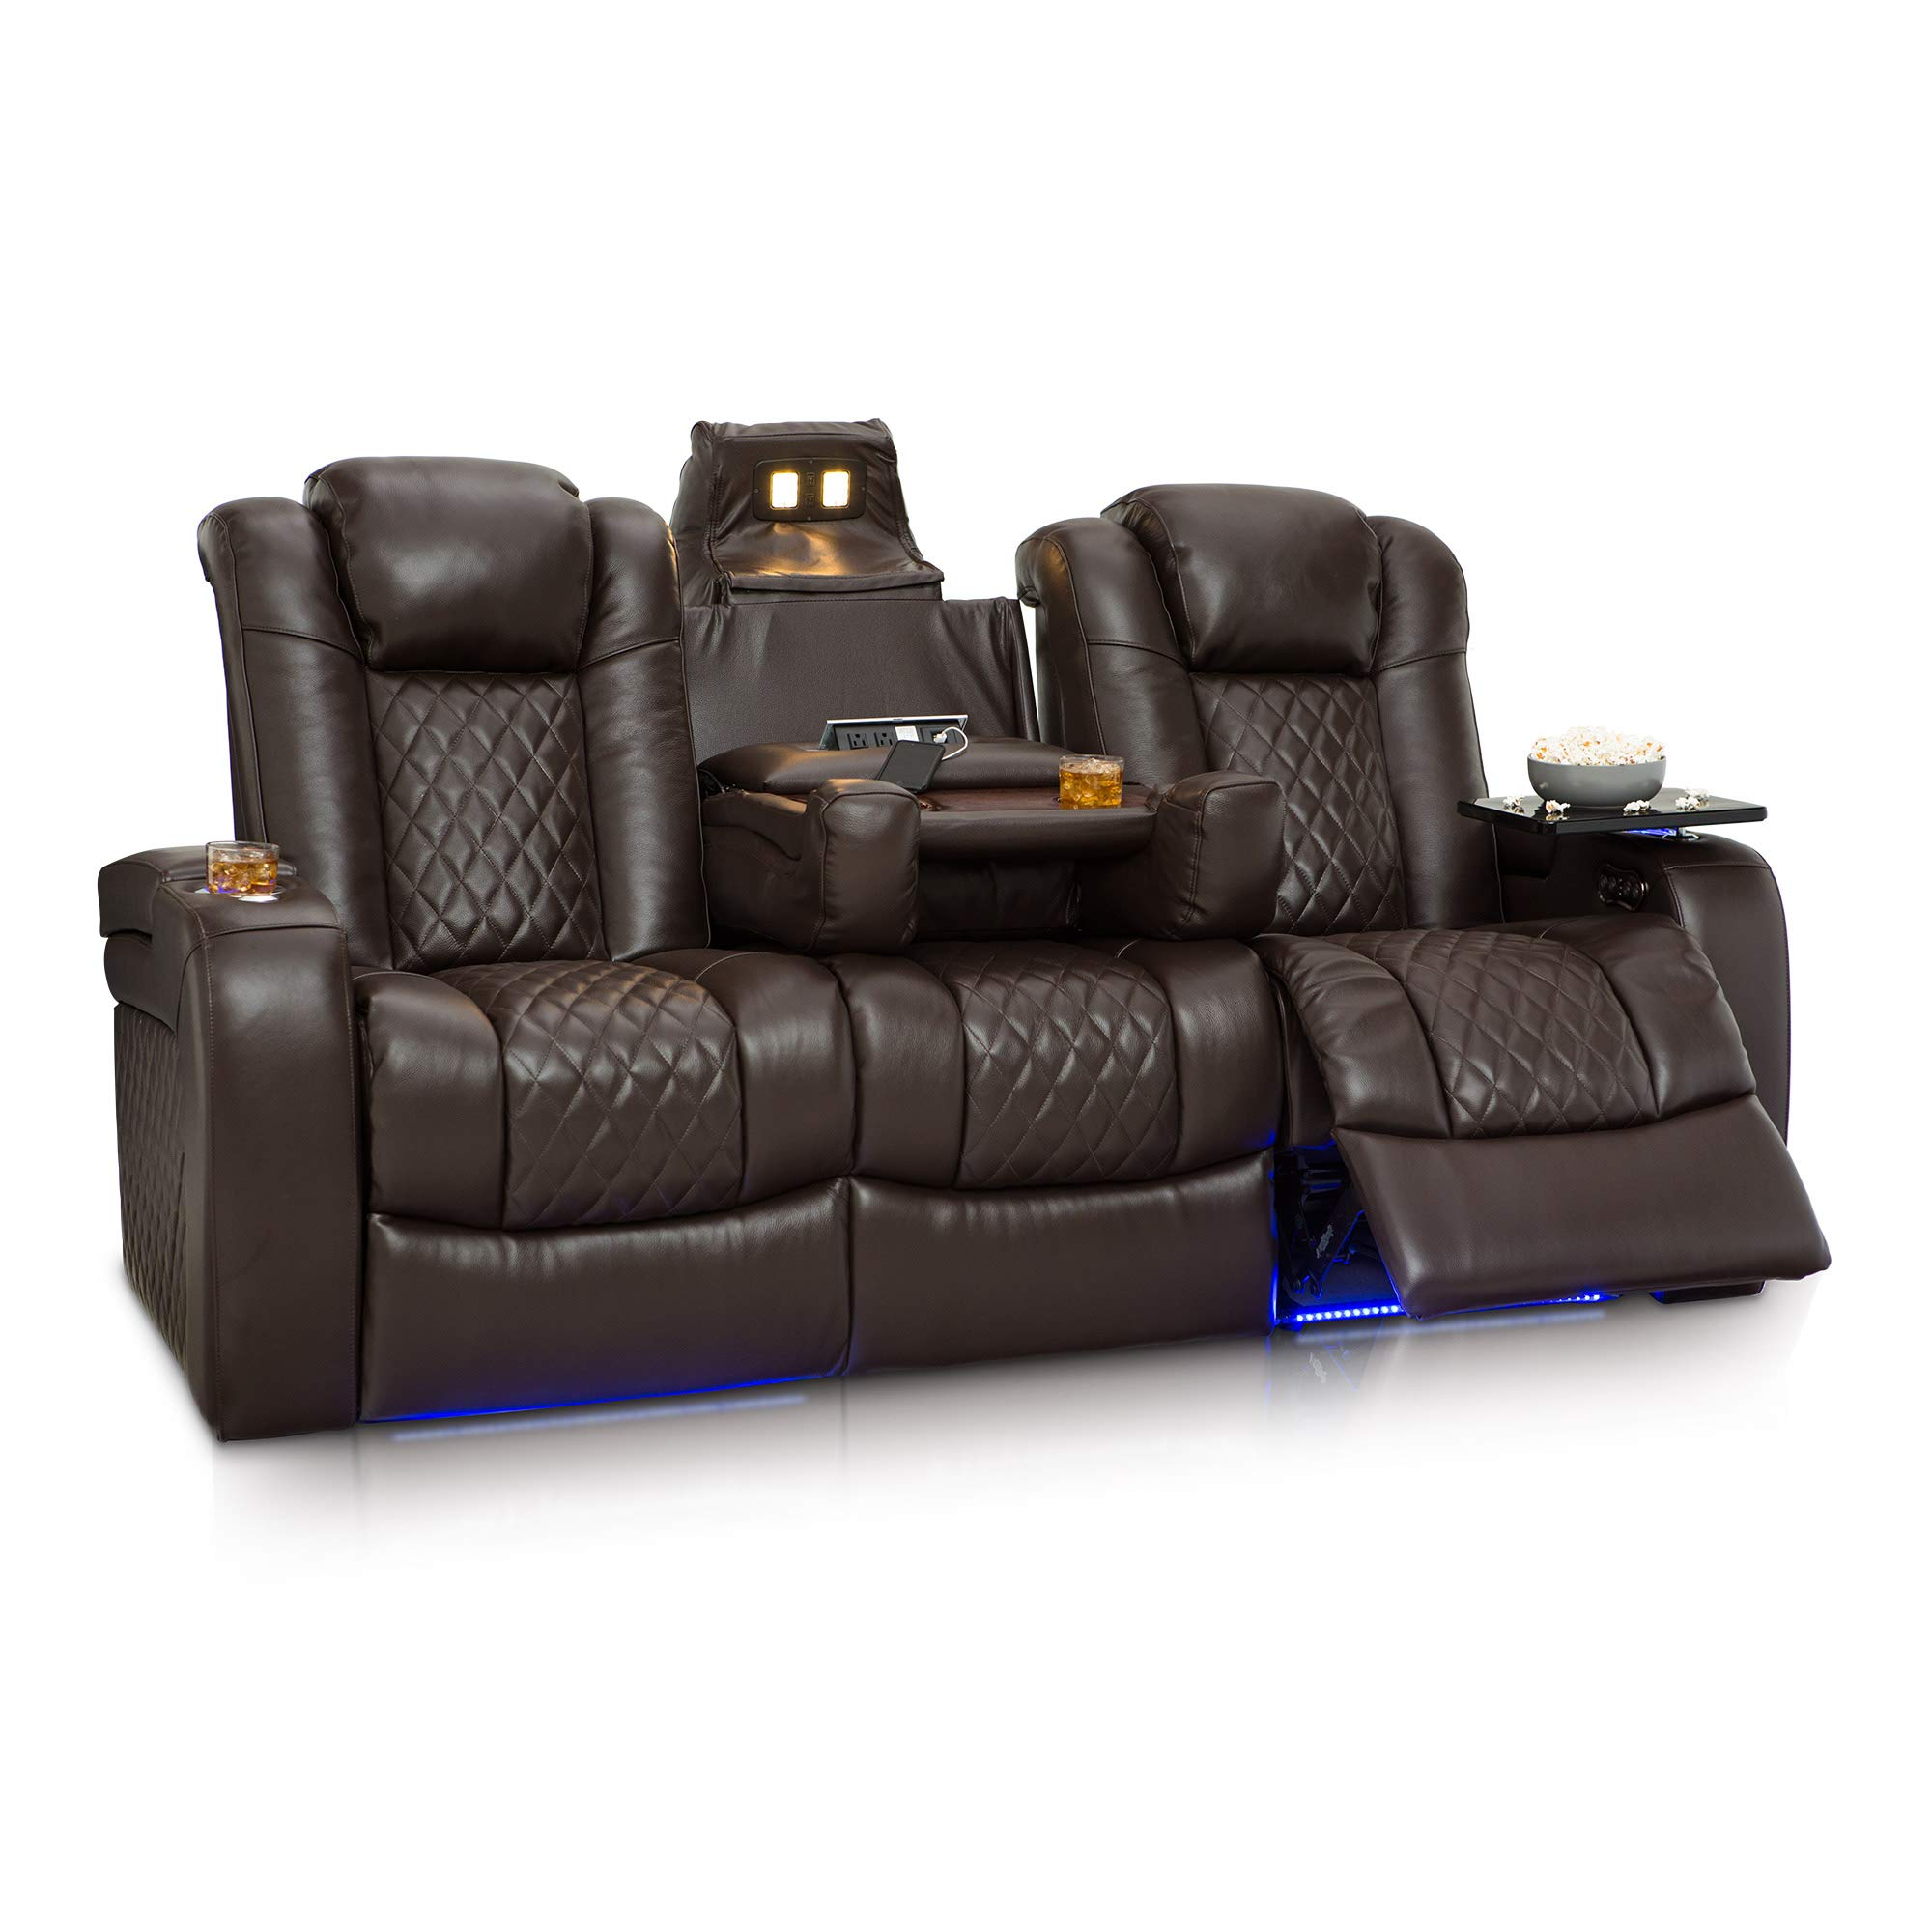 Seatcraft Anthem Home Theater Seating Leather Multimedia Power Recline Sofa with Fold-Down Table, Adjustable Powered Headrests, Storage, AC/USB and Wireless Charging and Cup Holders, Brown by Seatcraft